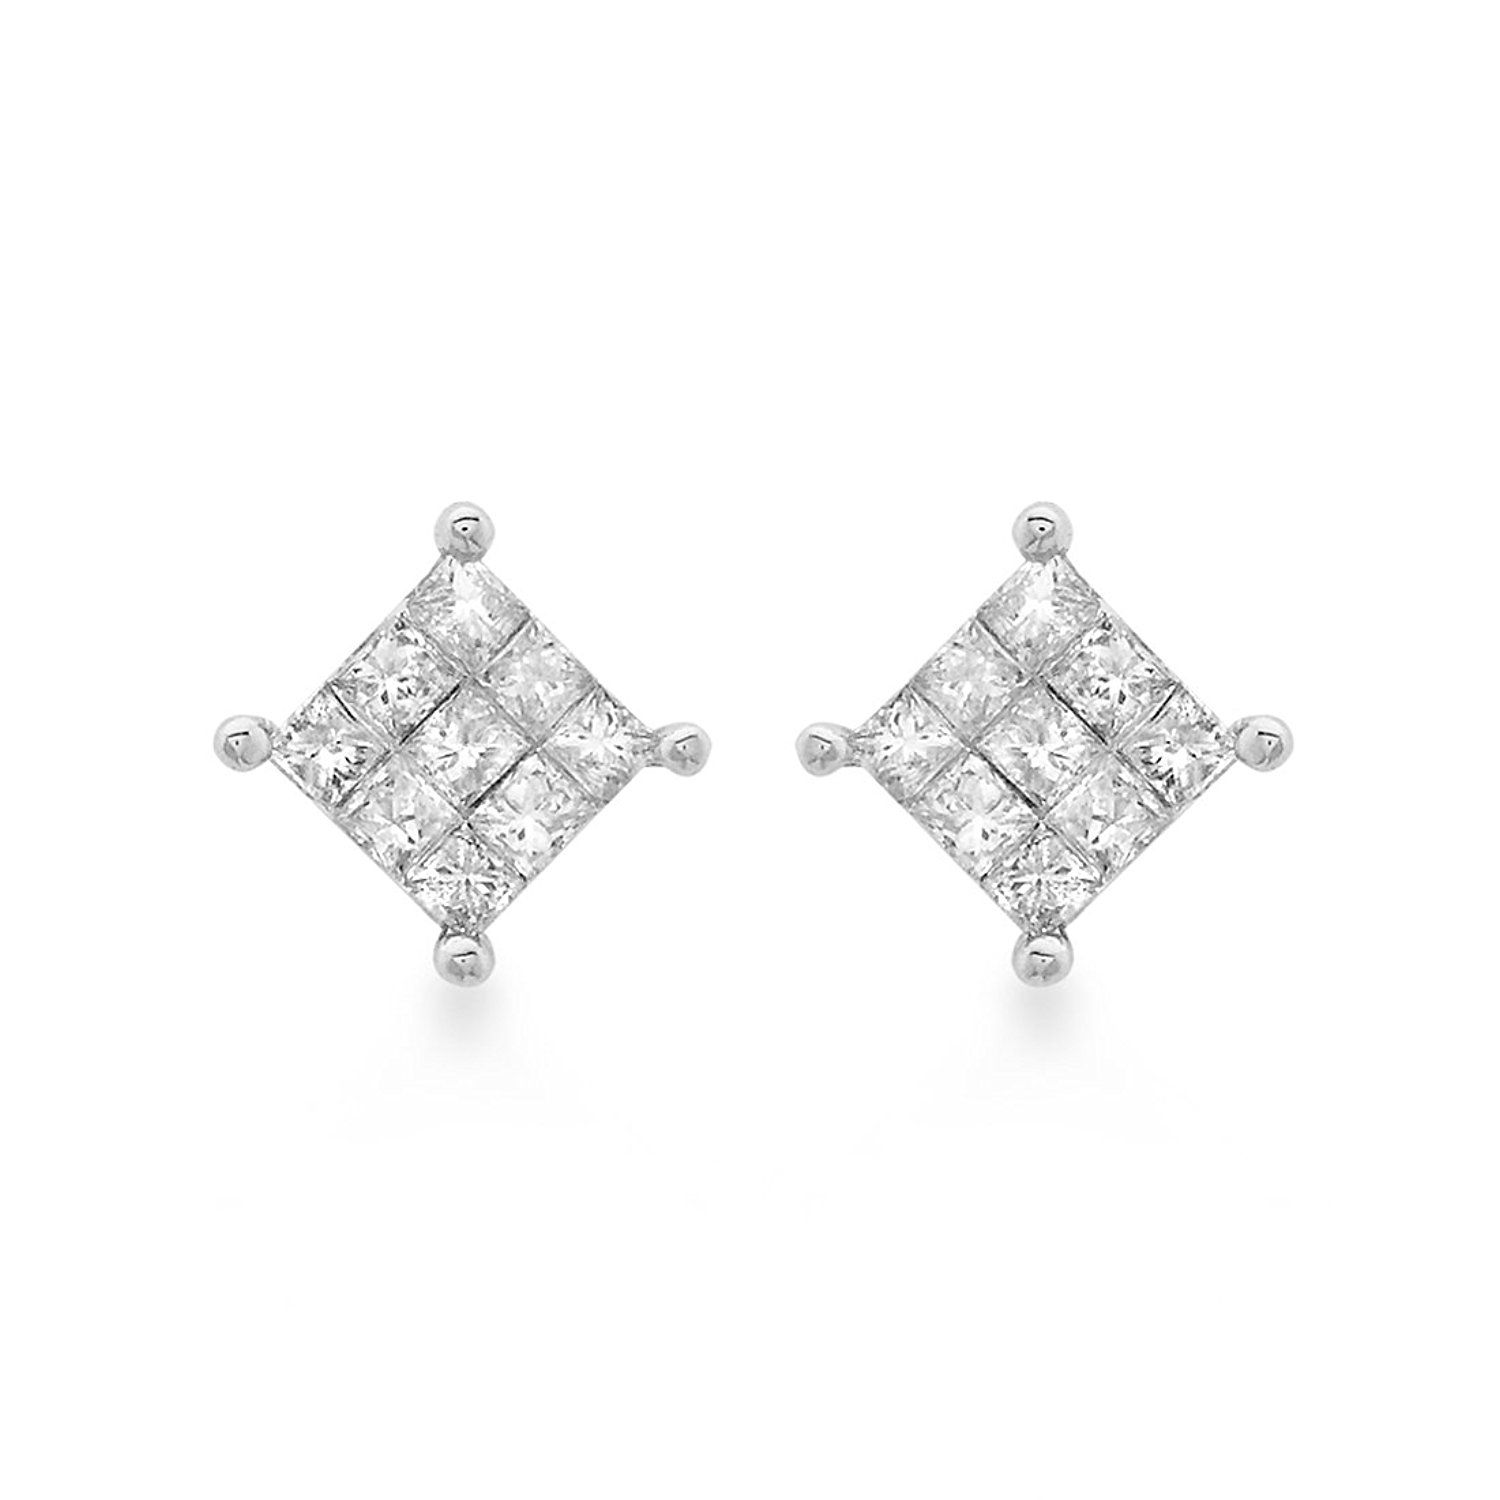 set swarovski sterling stud and earrings diamond amazon pendant jewelry crystal white elements silver necklace square dp ca veeckipl